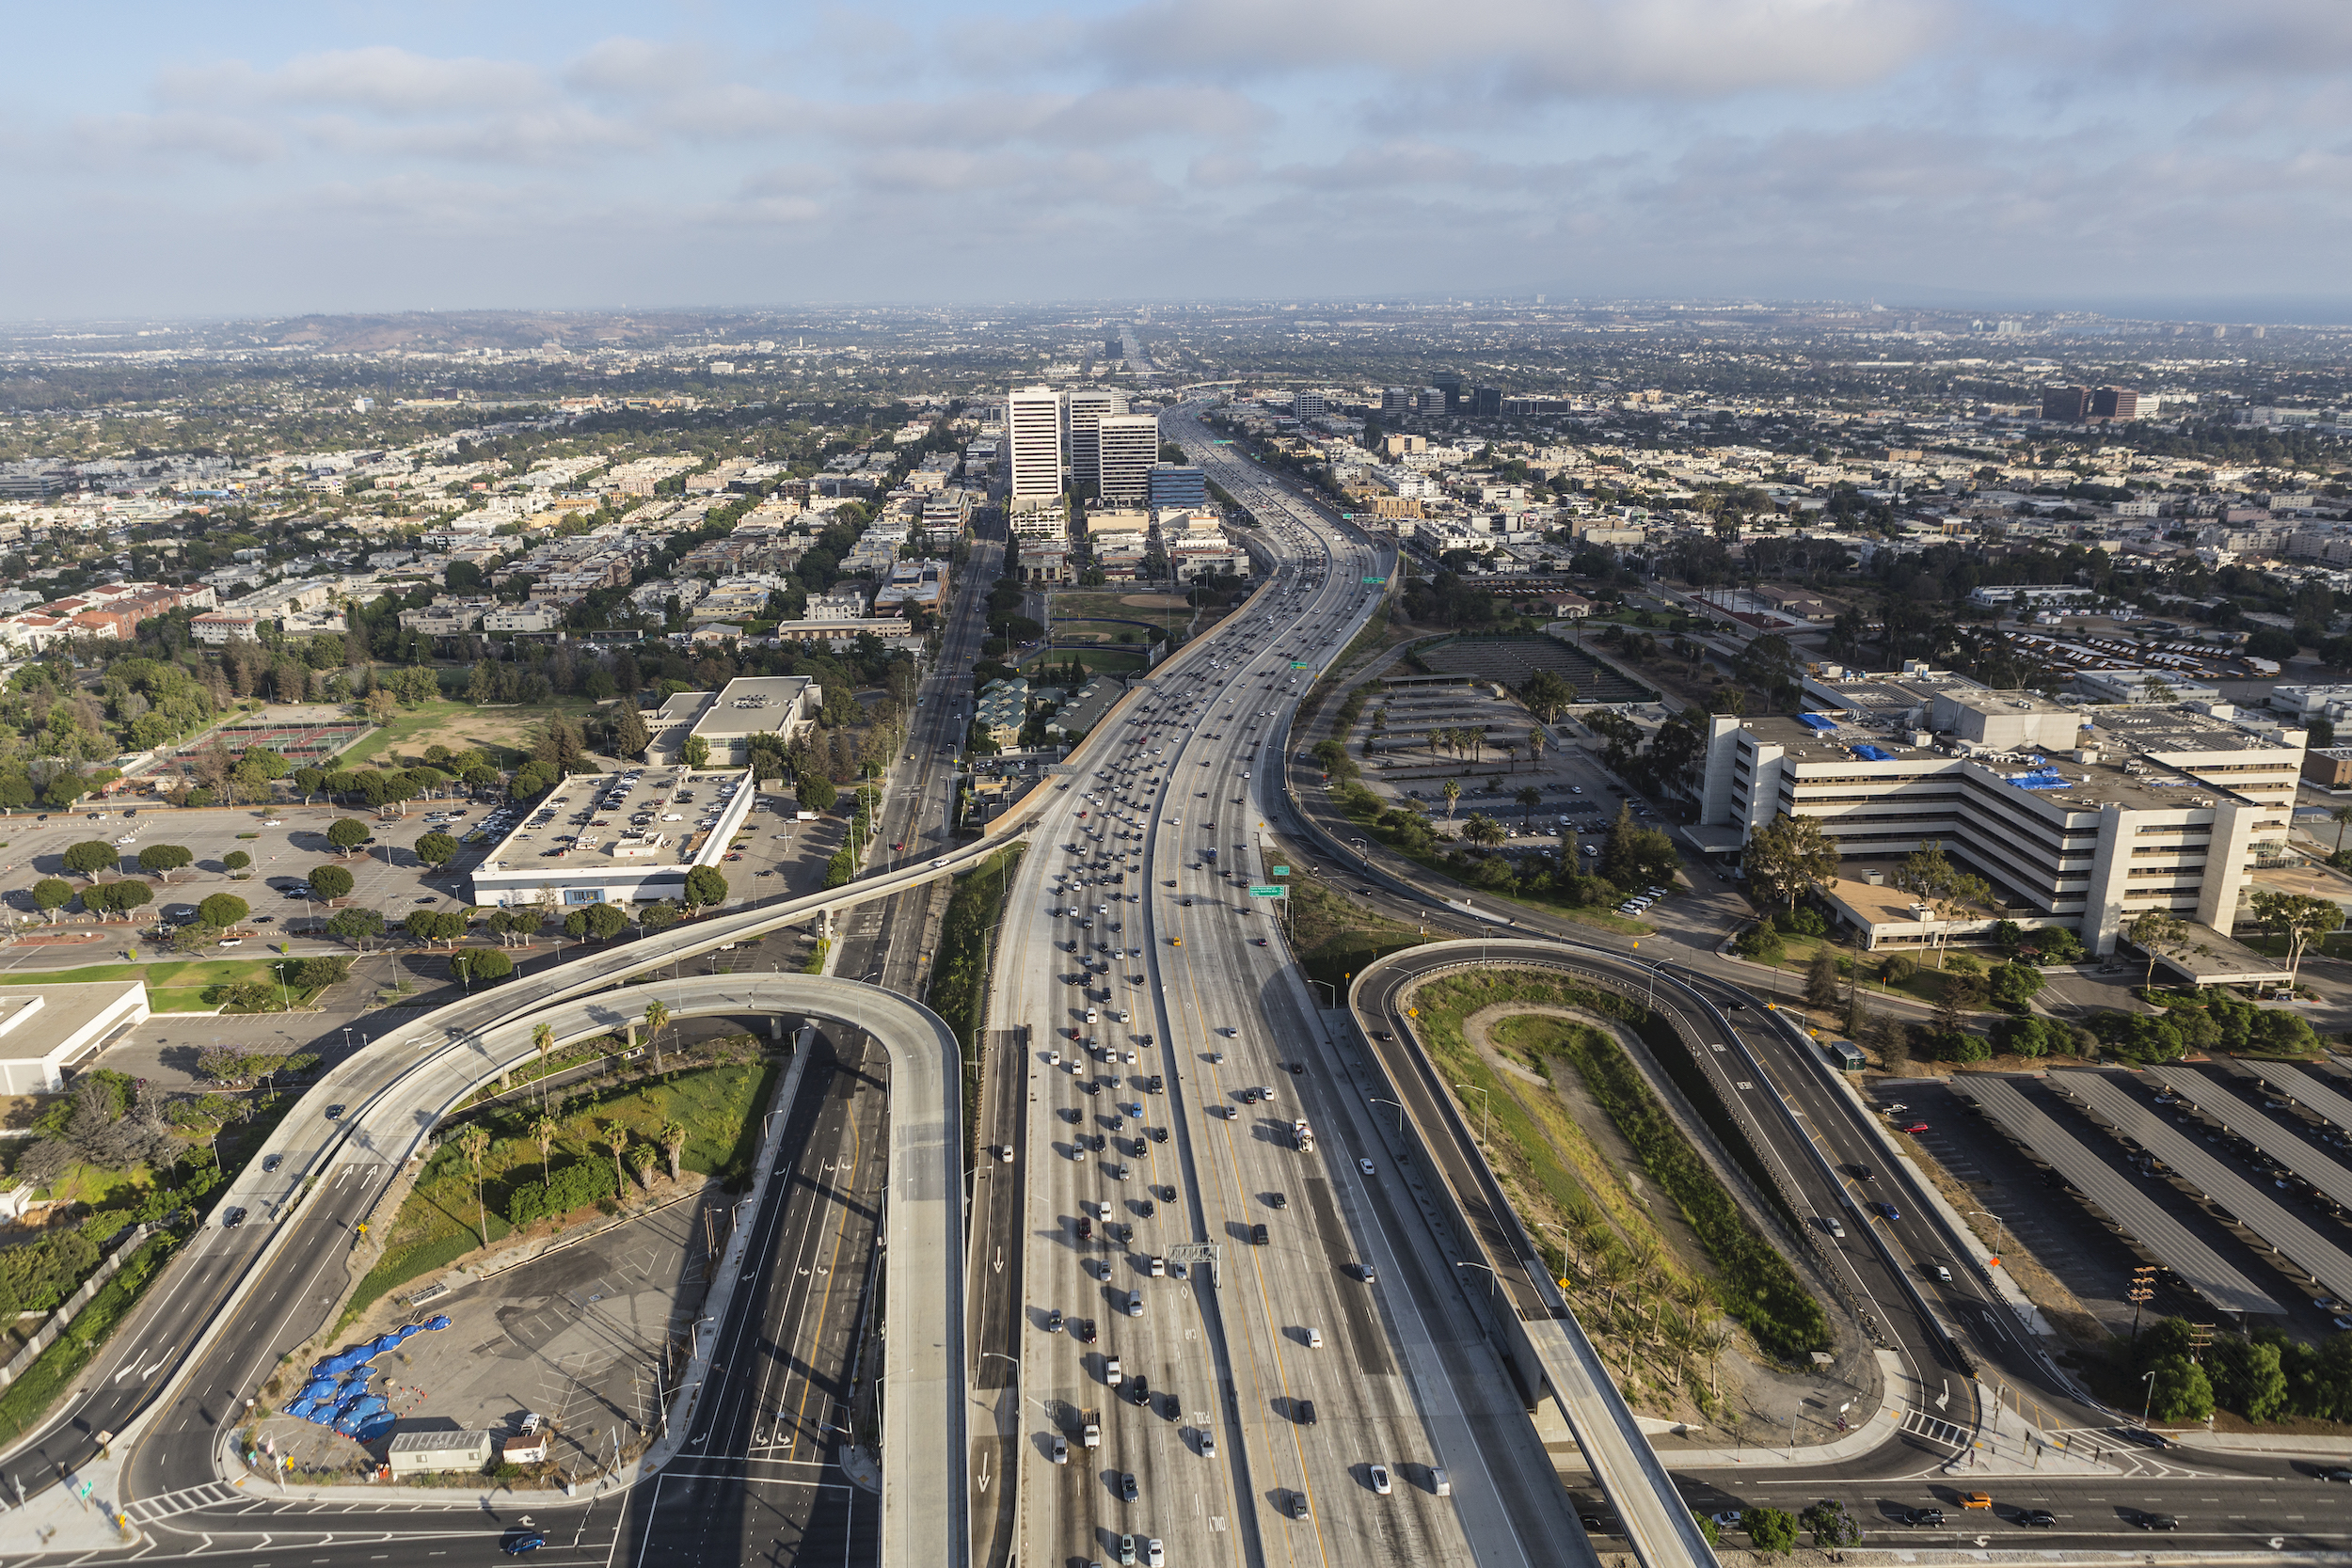 Aerial view of the San Diego 405 Freeway at Wilshire Blvd in West LA.